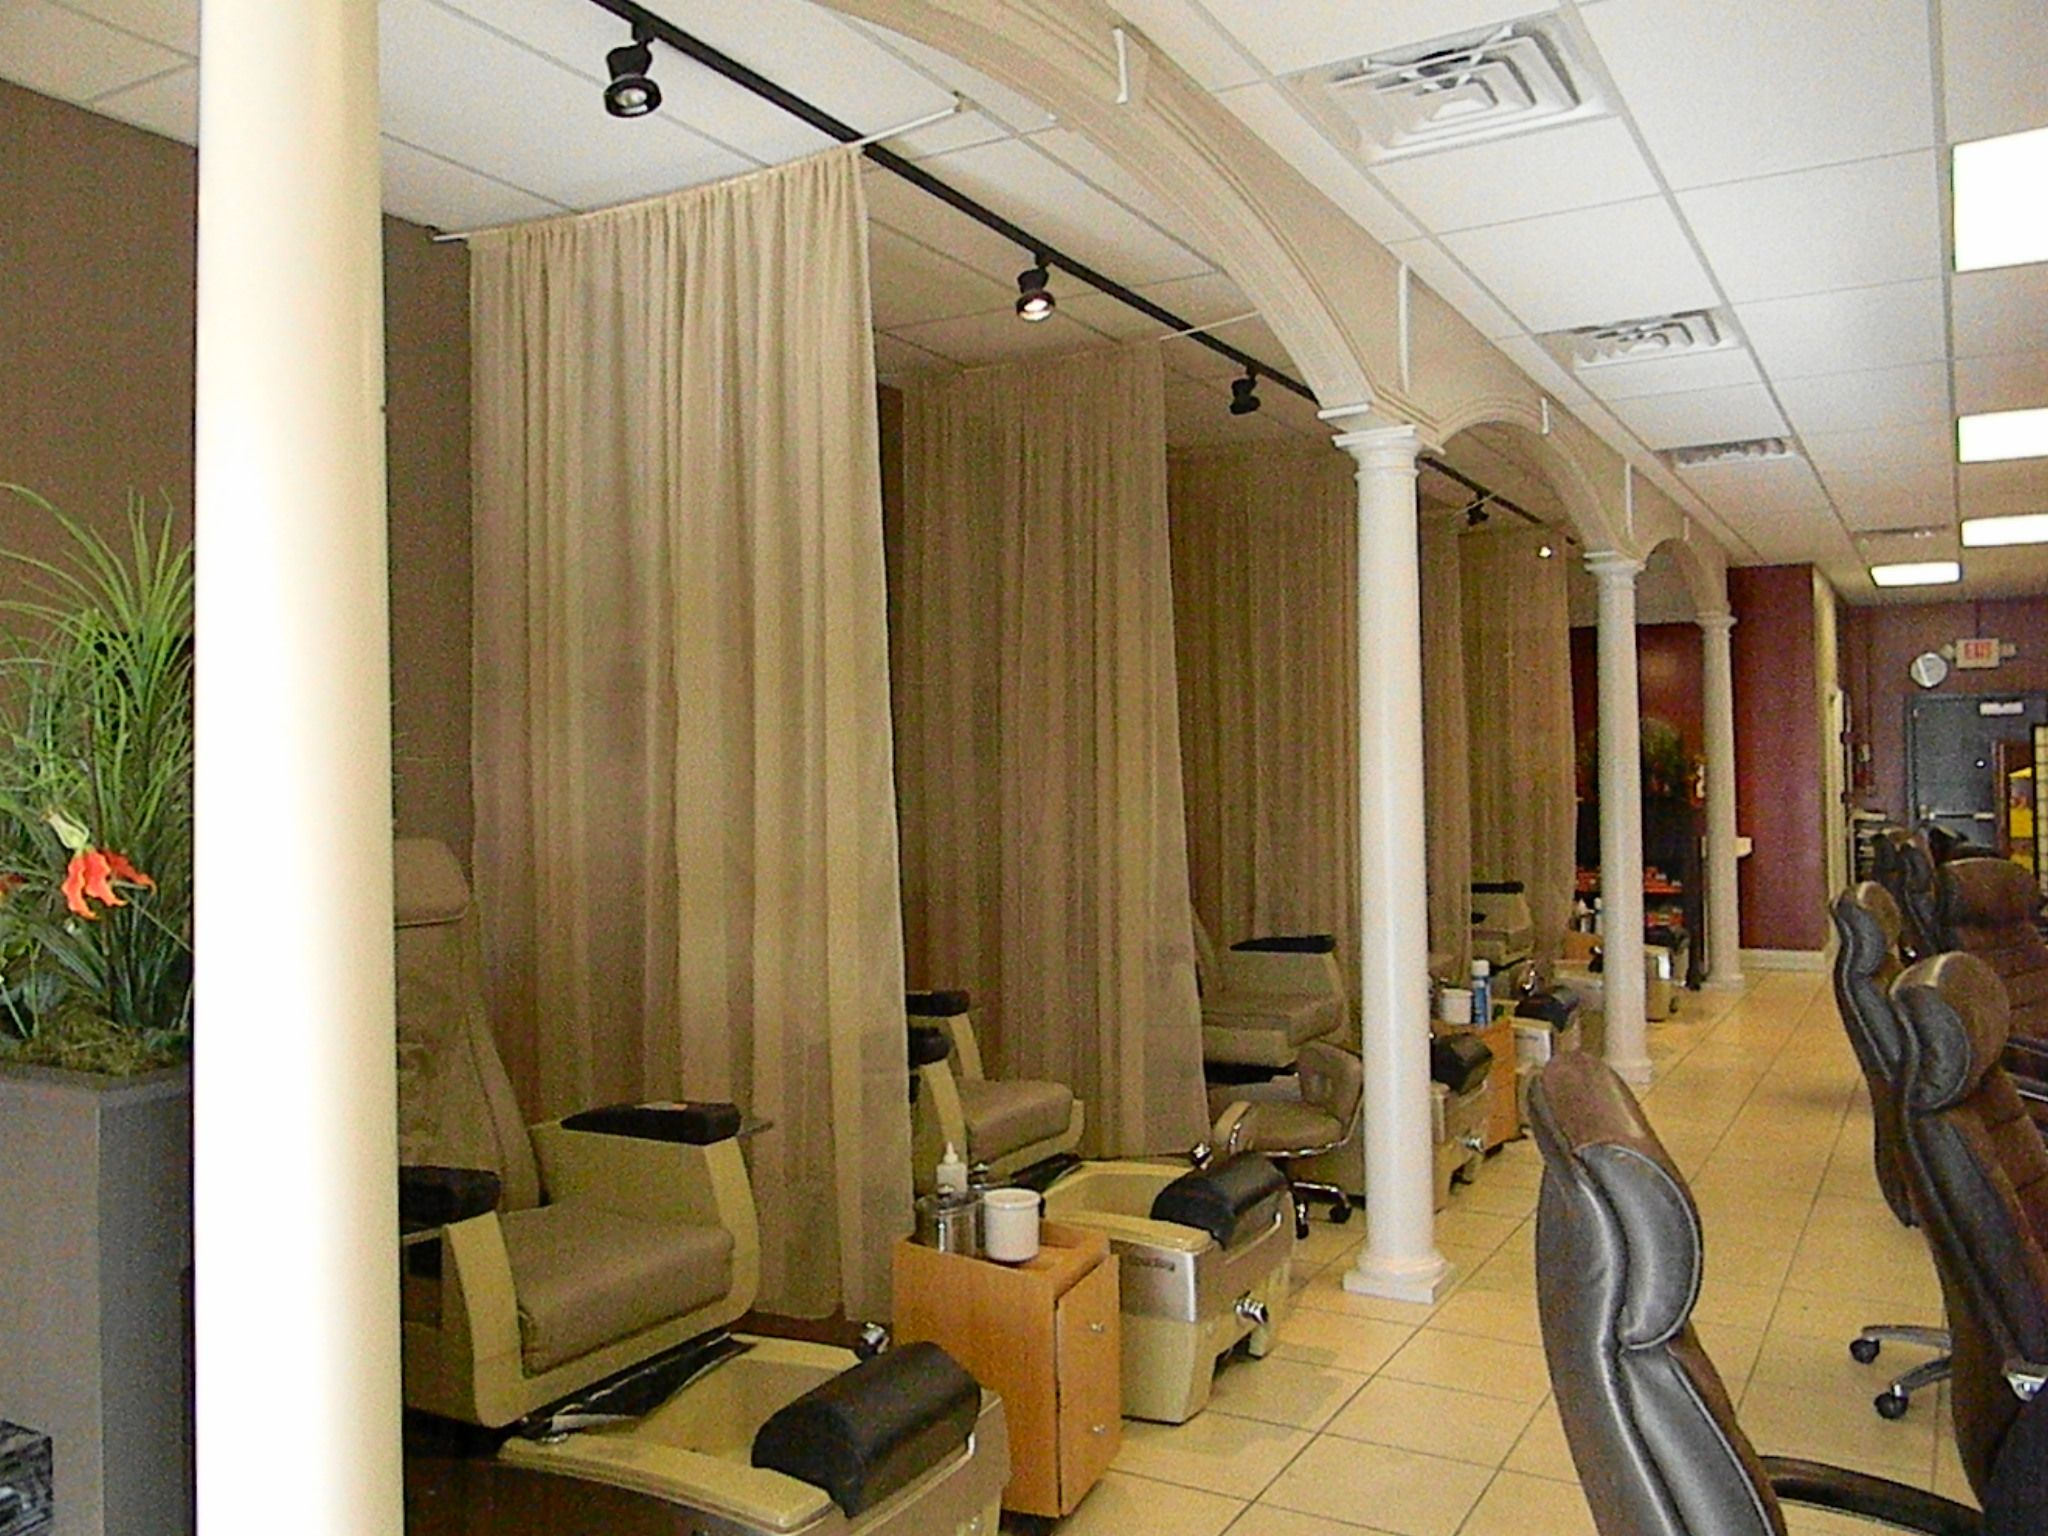 Salon Spa Nail Salon Ideas Design Nail Salon Interior Design Ideas